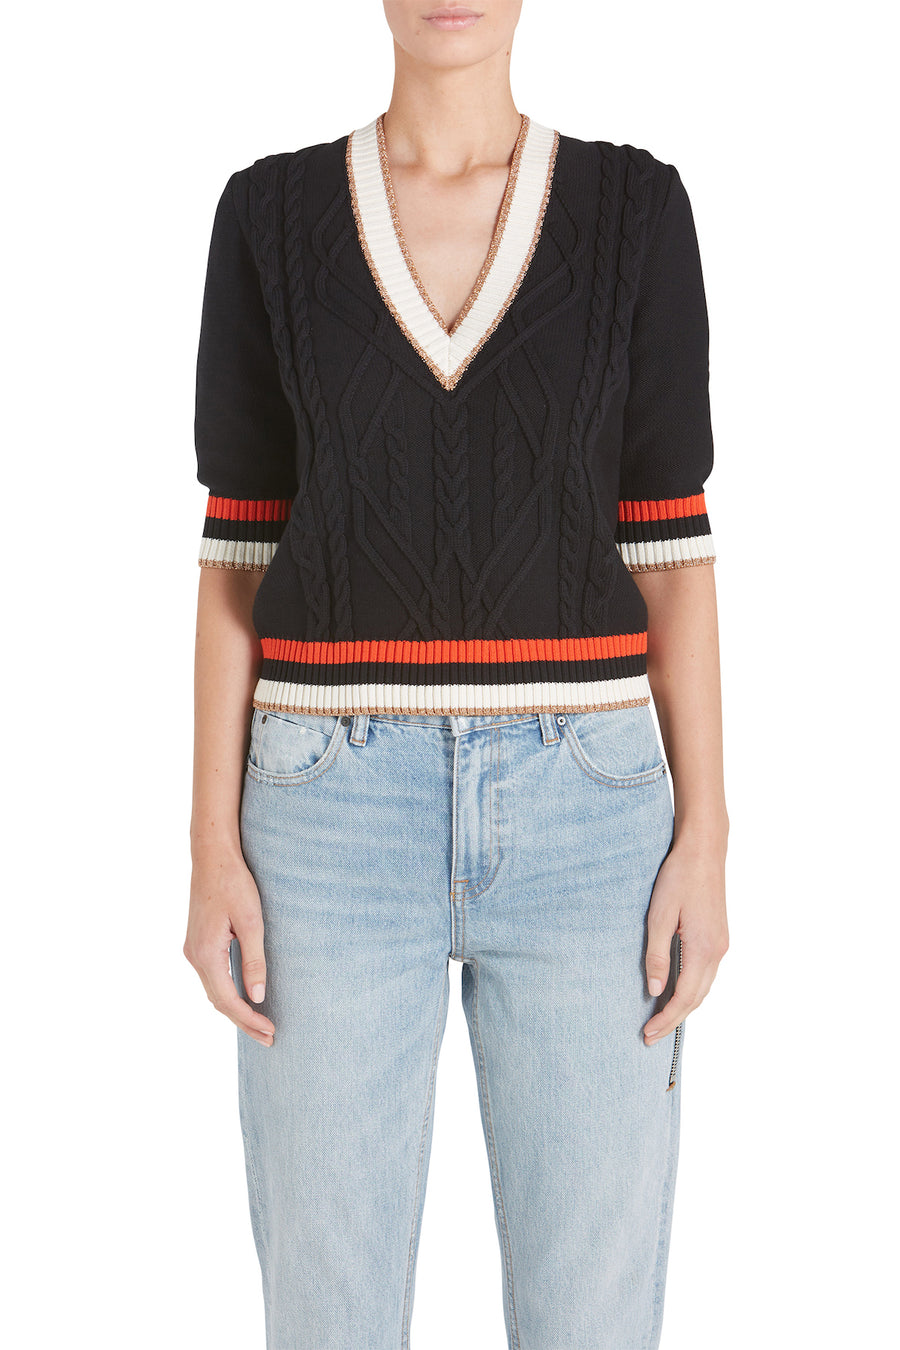 ARIA VNECK KNIT SWEATER